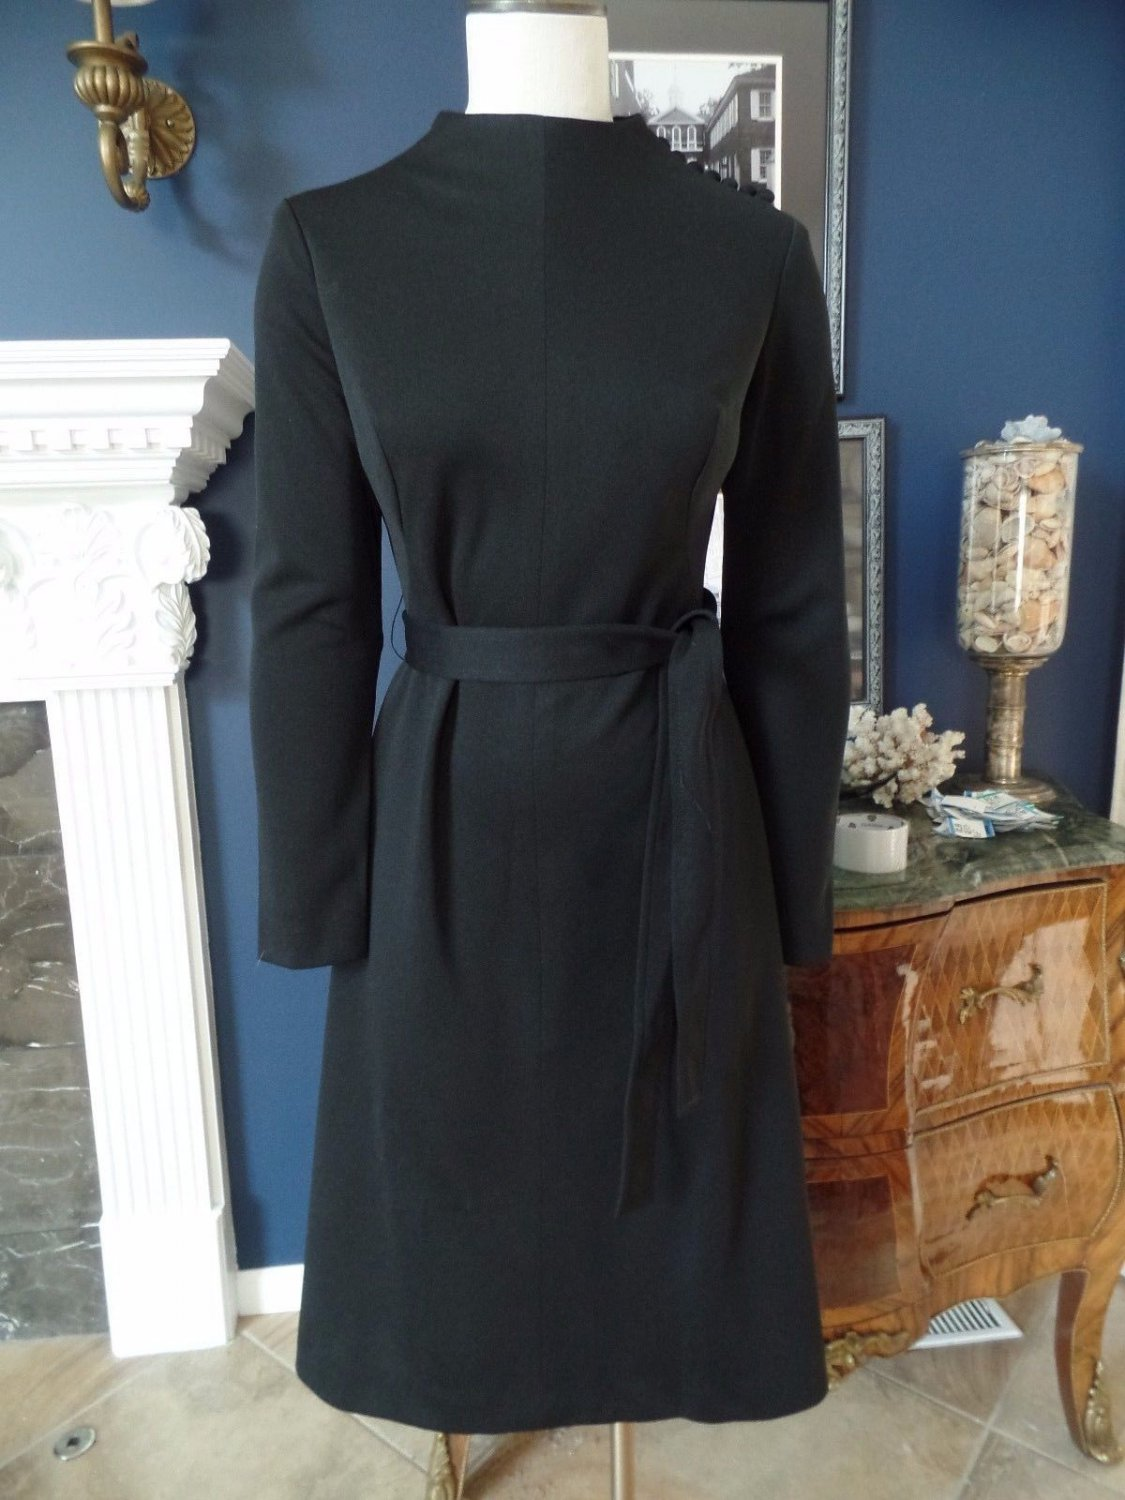 NWT PAUL VINTAGE 60's/70's Black Polyester Belted Long Sleeve Sheath  Dress 12